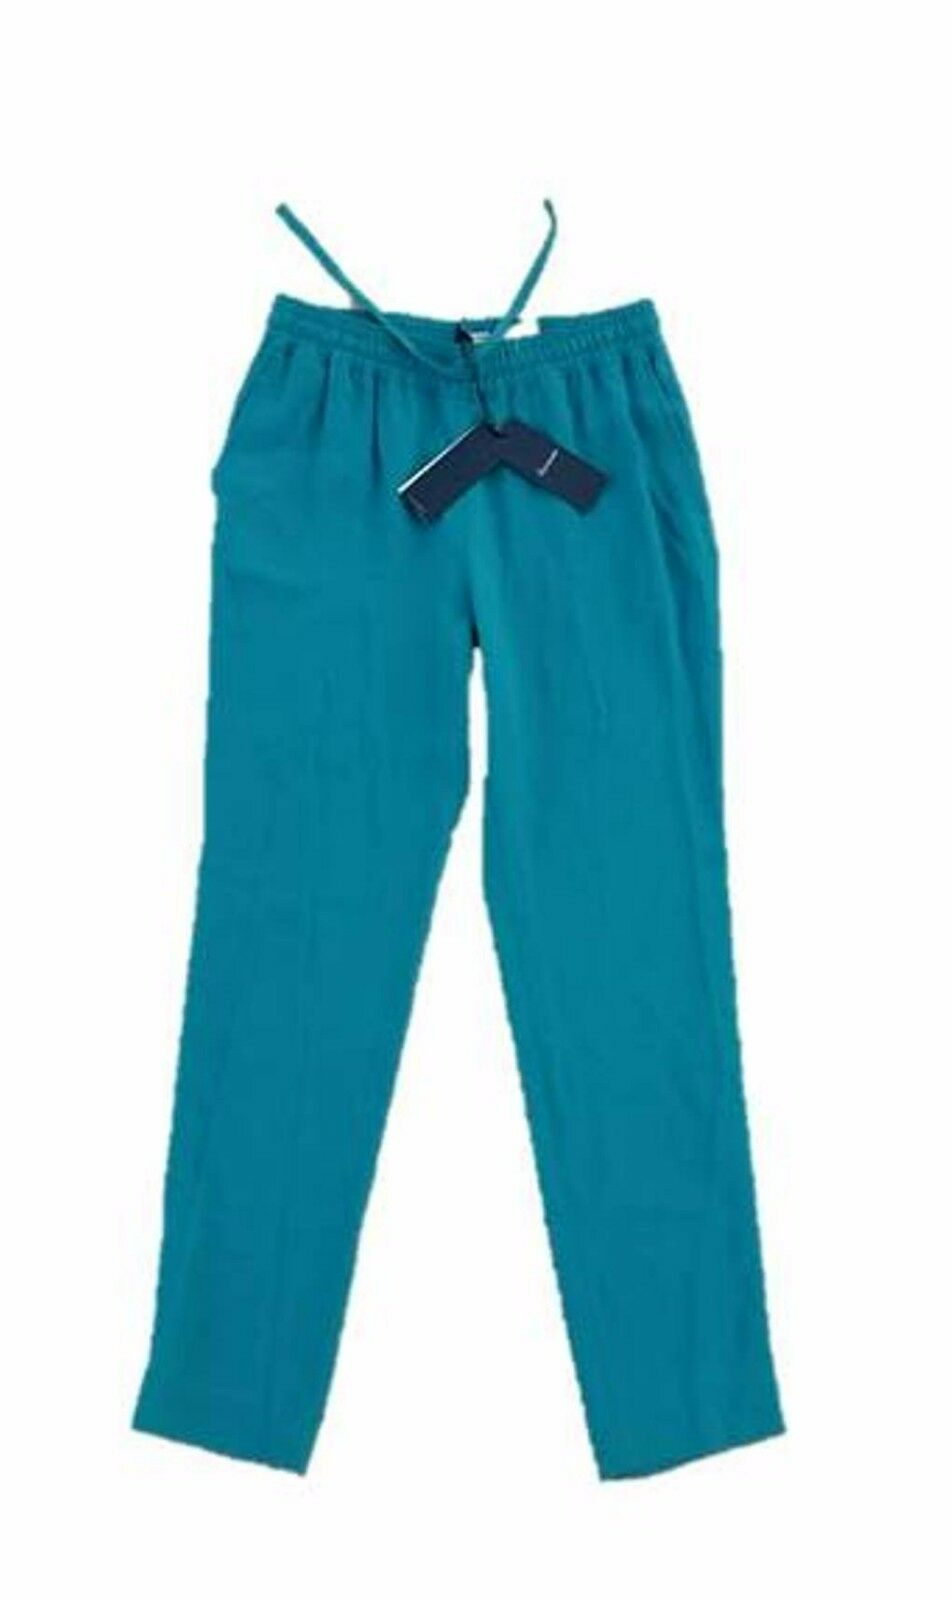 345 FACONNABLE   blue Canard   Drawcord PANTS in GREEN 6 Free Shipping